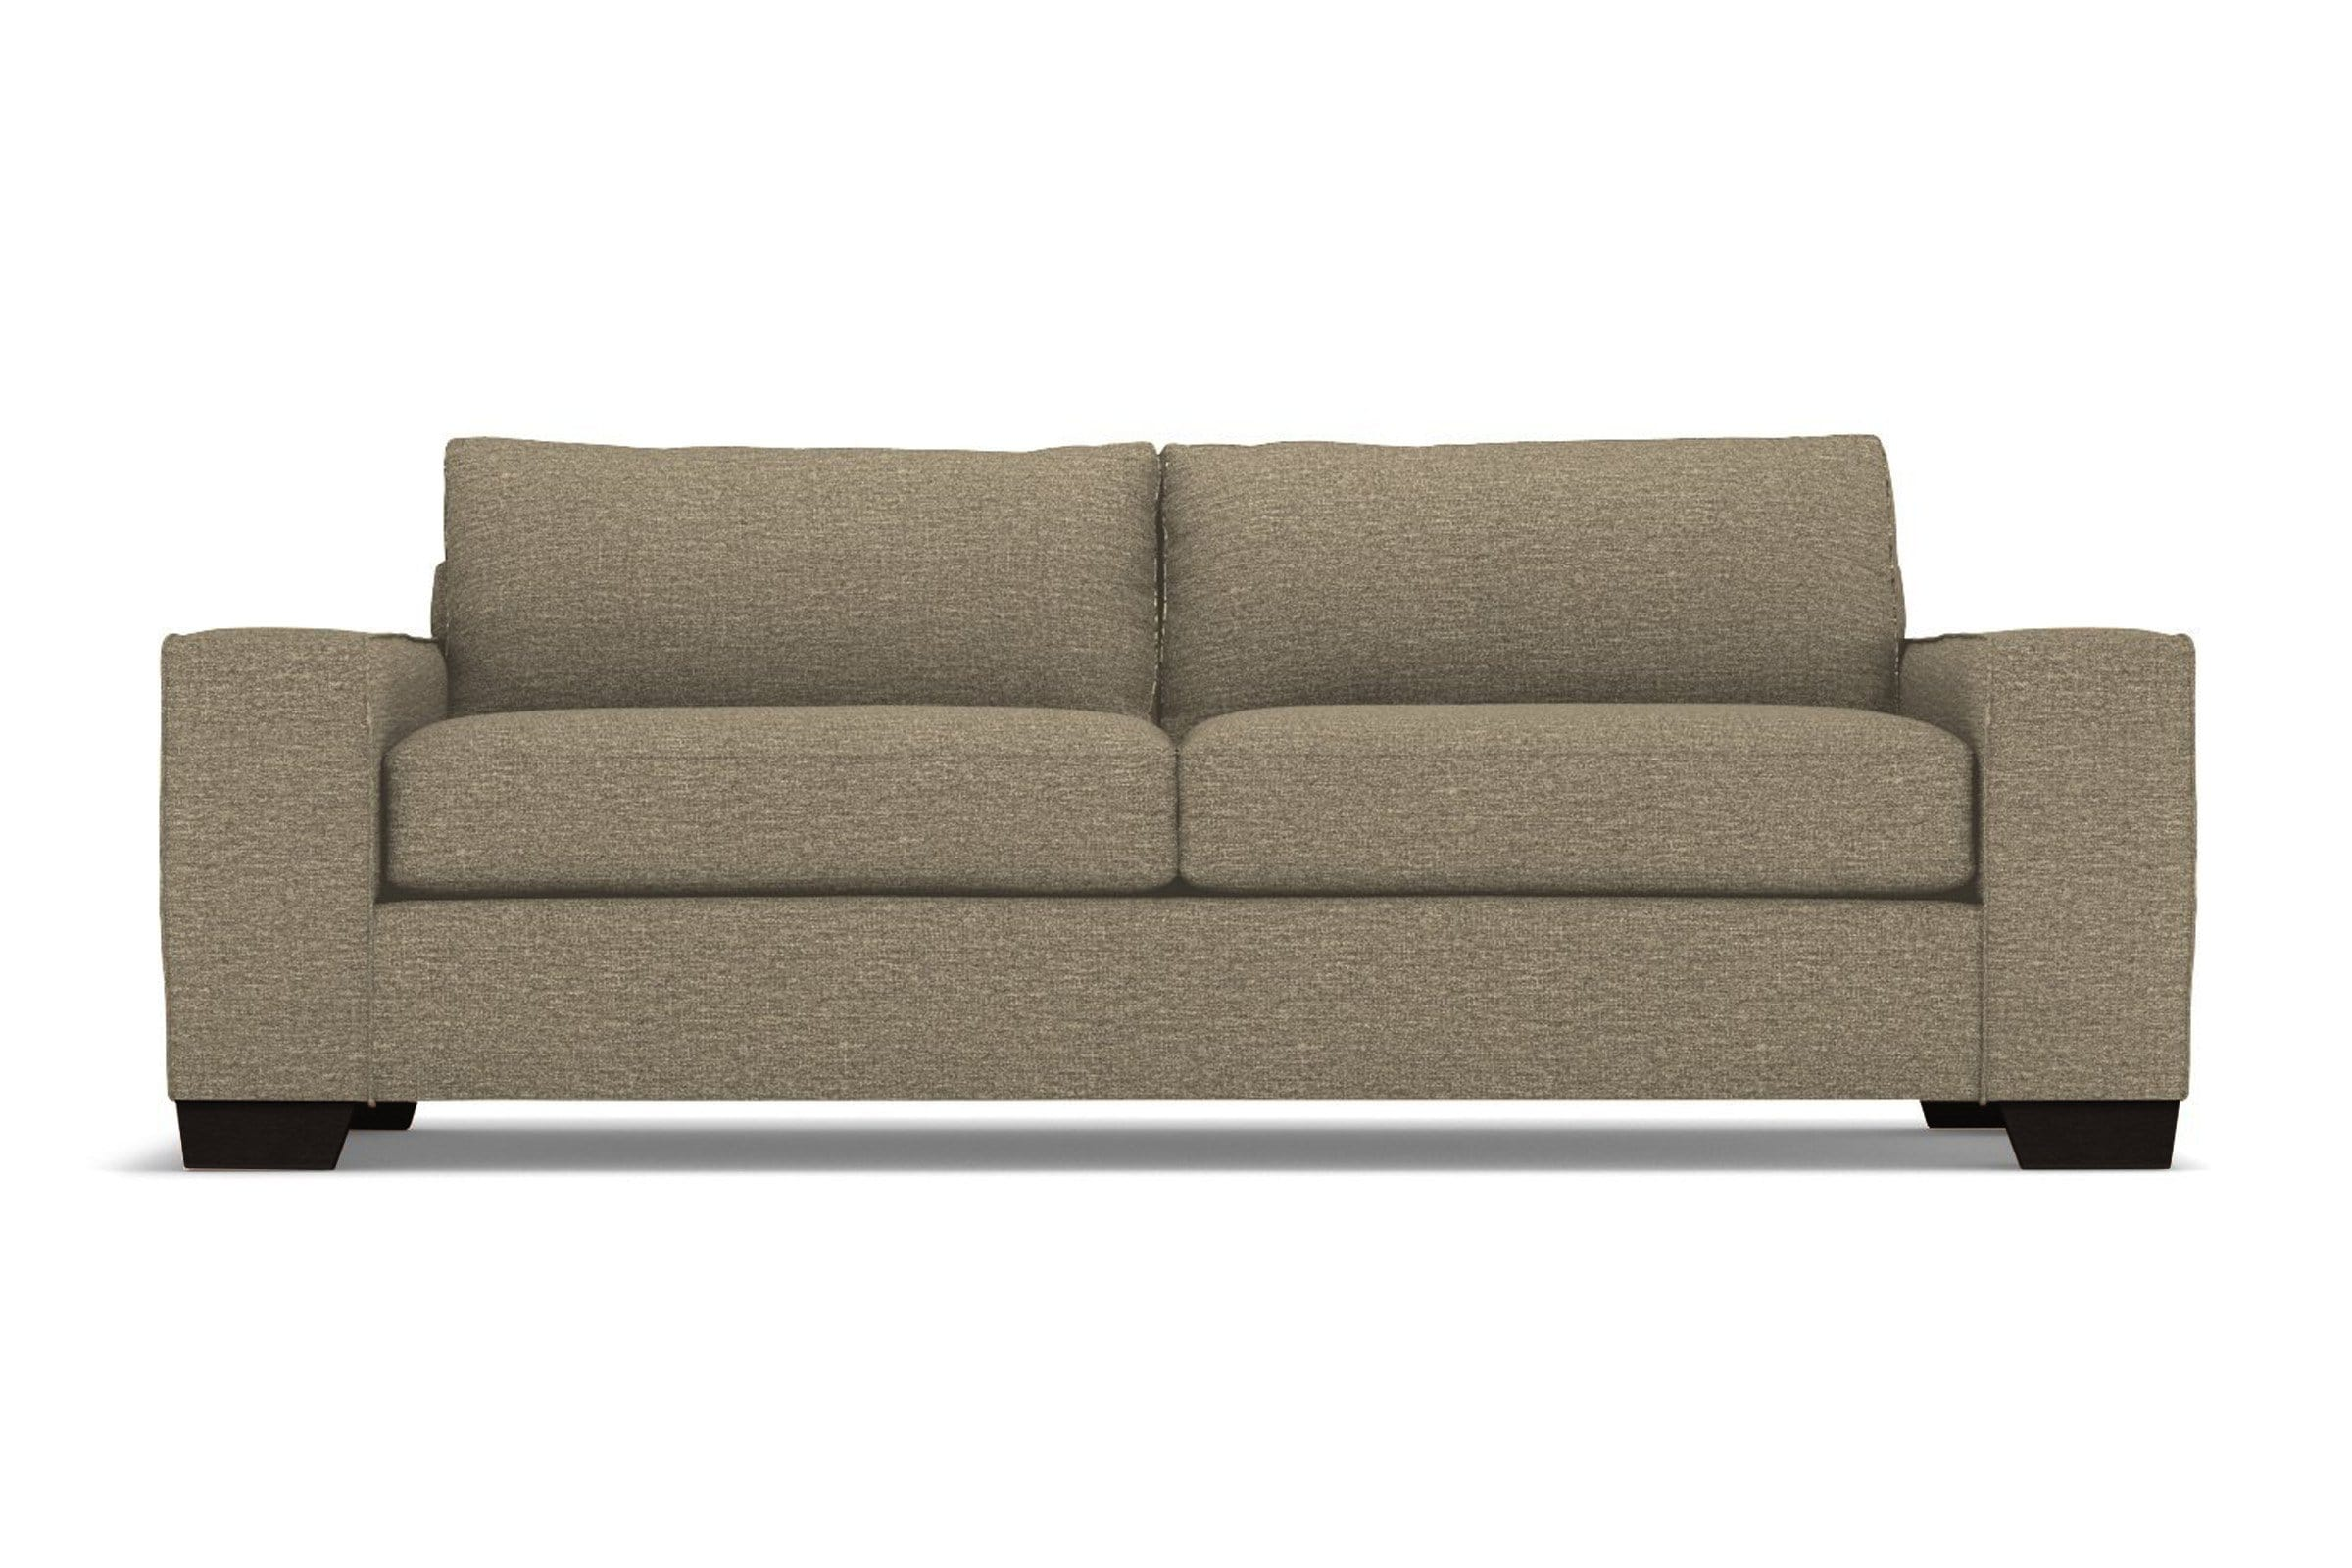 Melrose Sofa - Taupe QUICK SHIP - Modern Couch Made in the USA - Sold by Apt2B